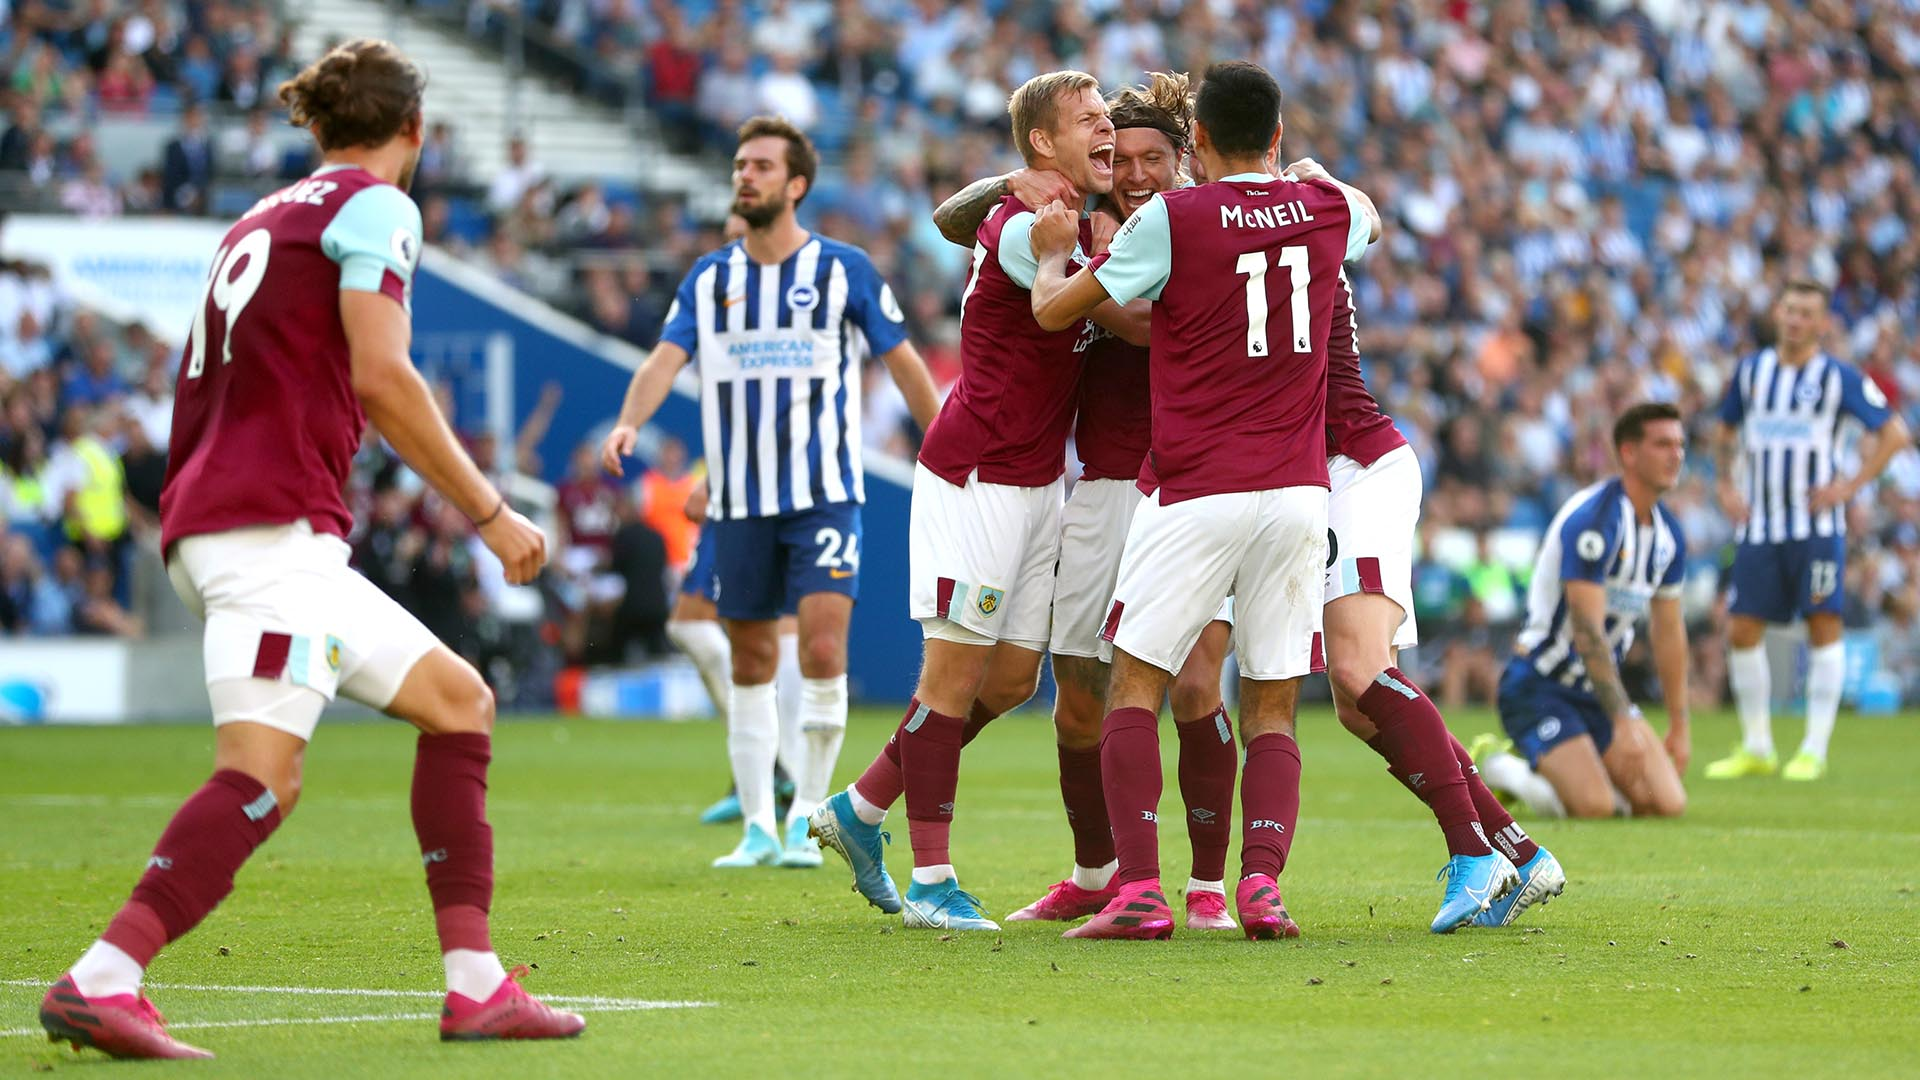 Extended highlights: Brighton and Hove Albion 1, Burnley 1